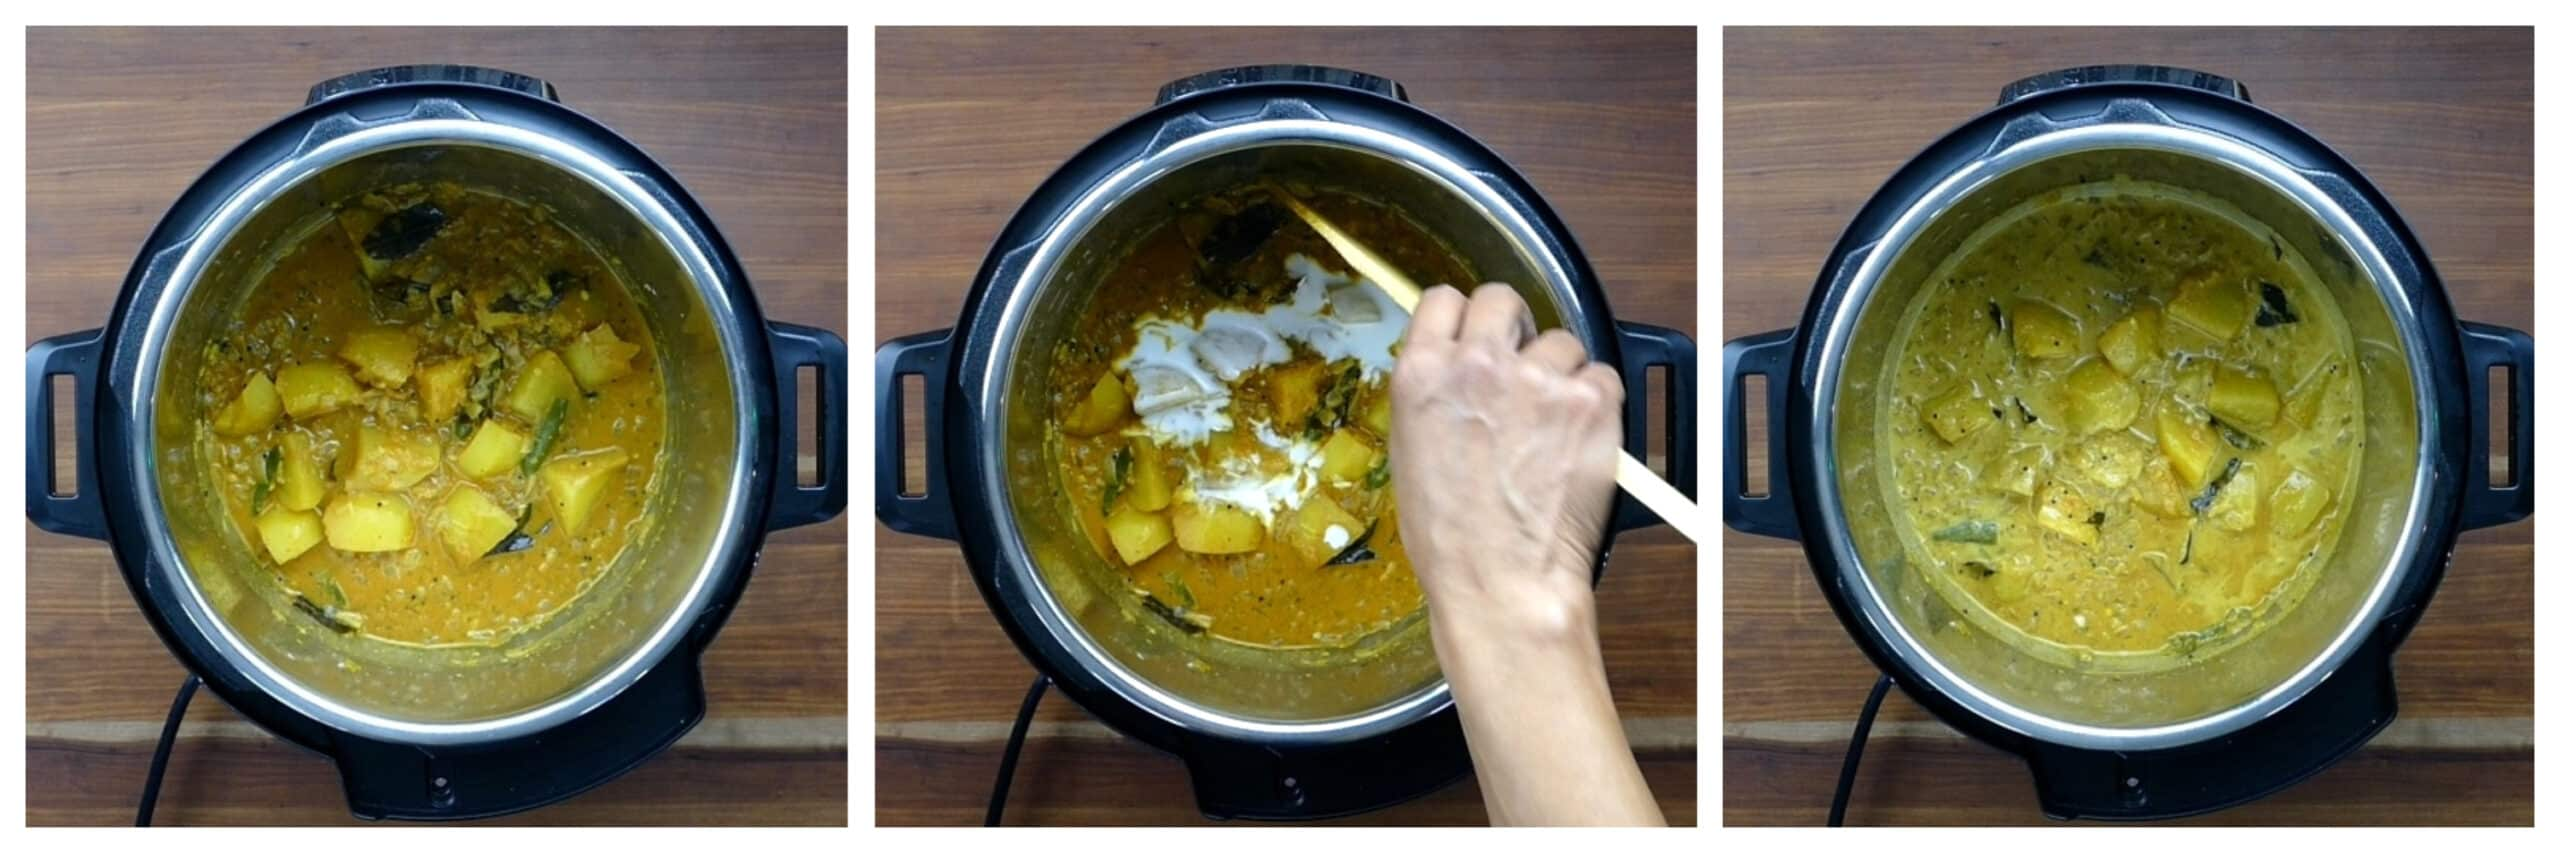 Instant Pot Egg Curry Instructions collage - curry, add coconut milk, stirred